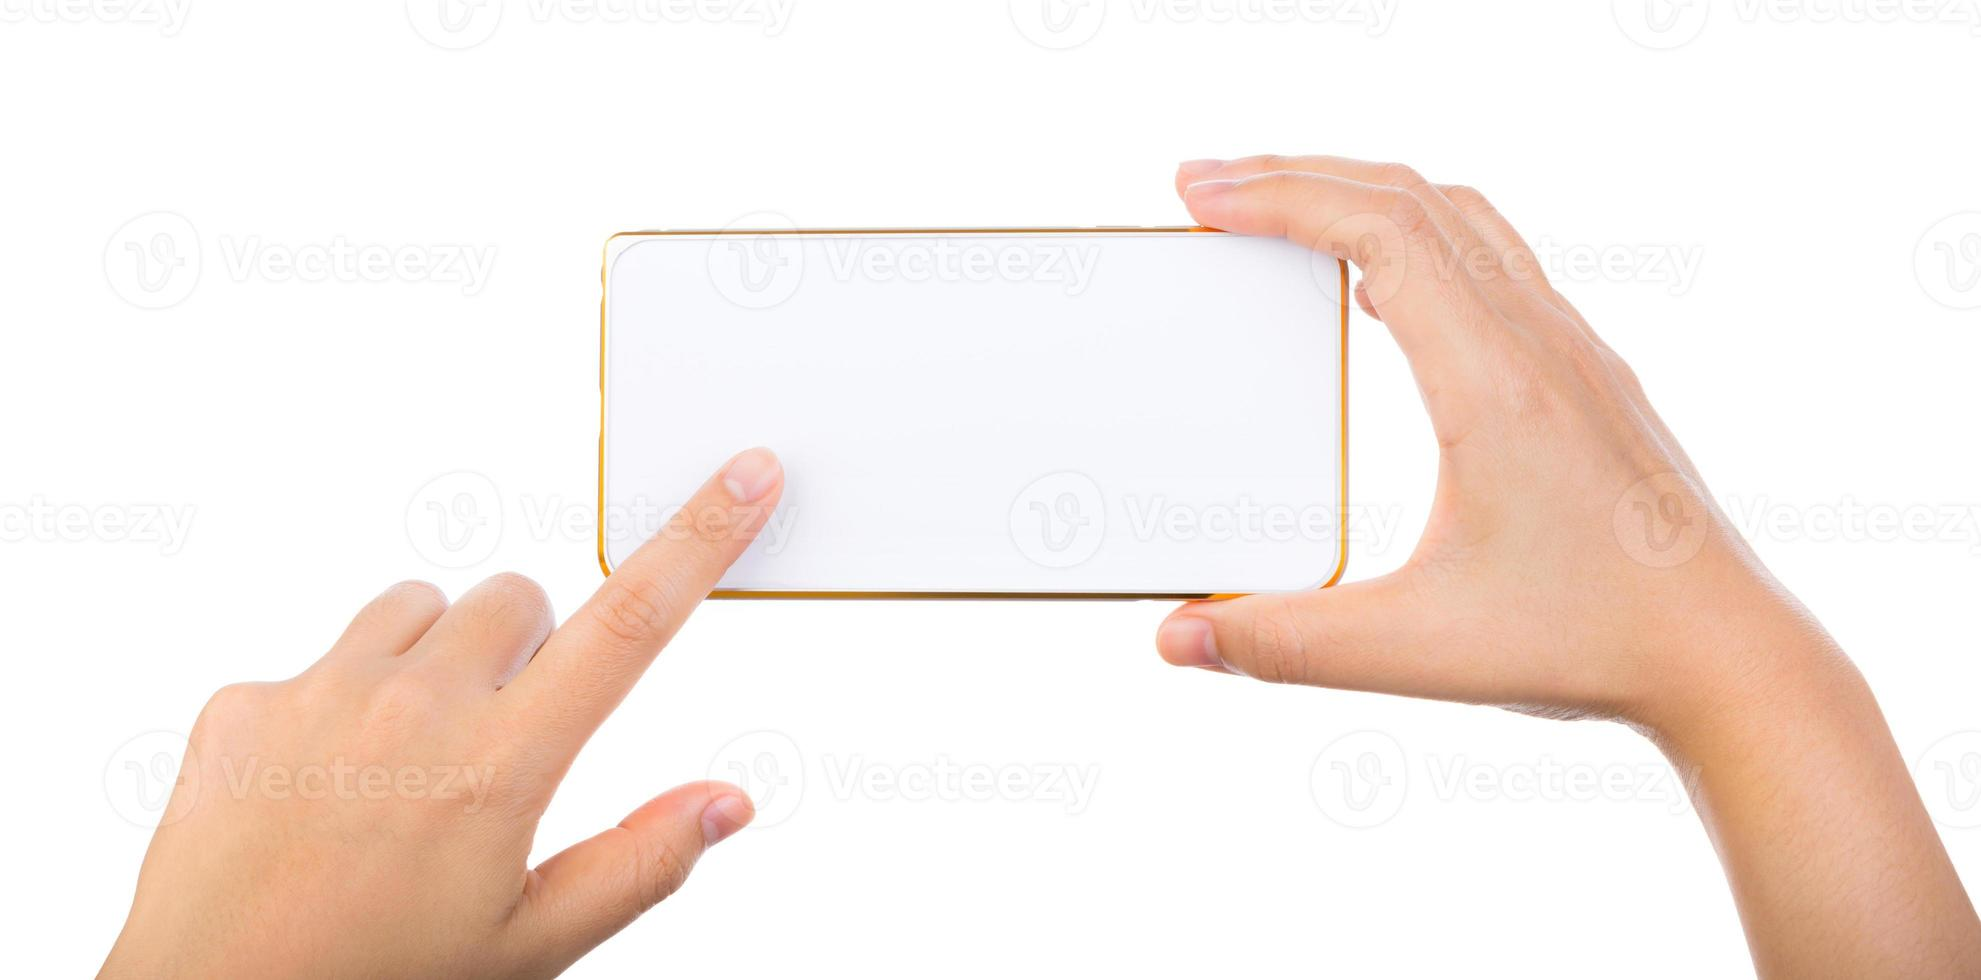 Female hand holding gold mobile phone smartphone photo